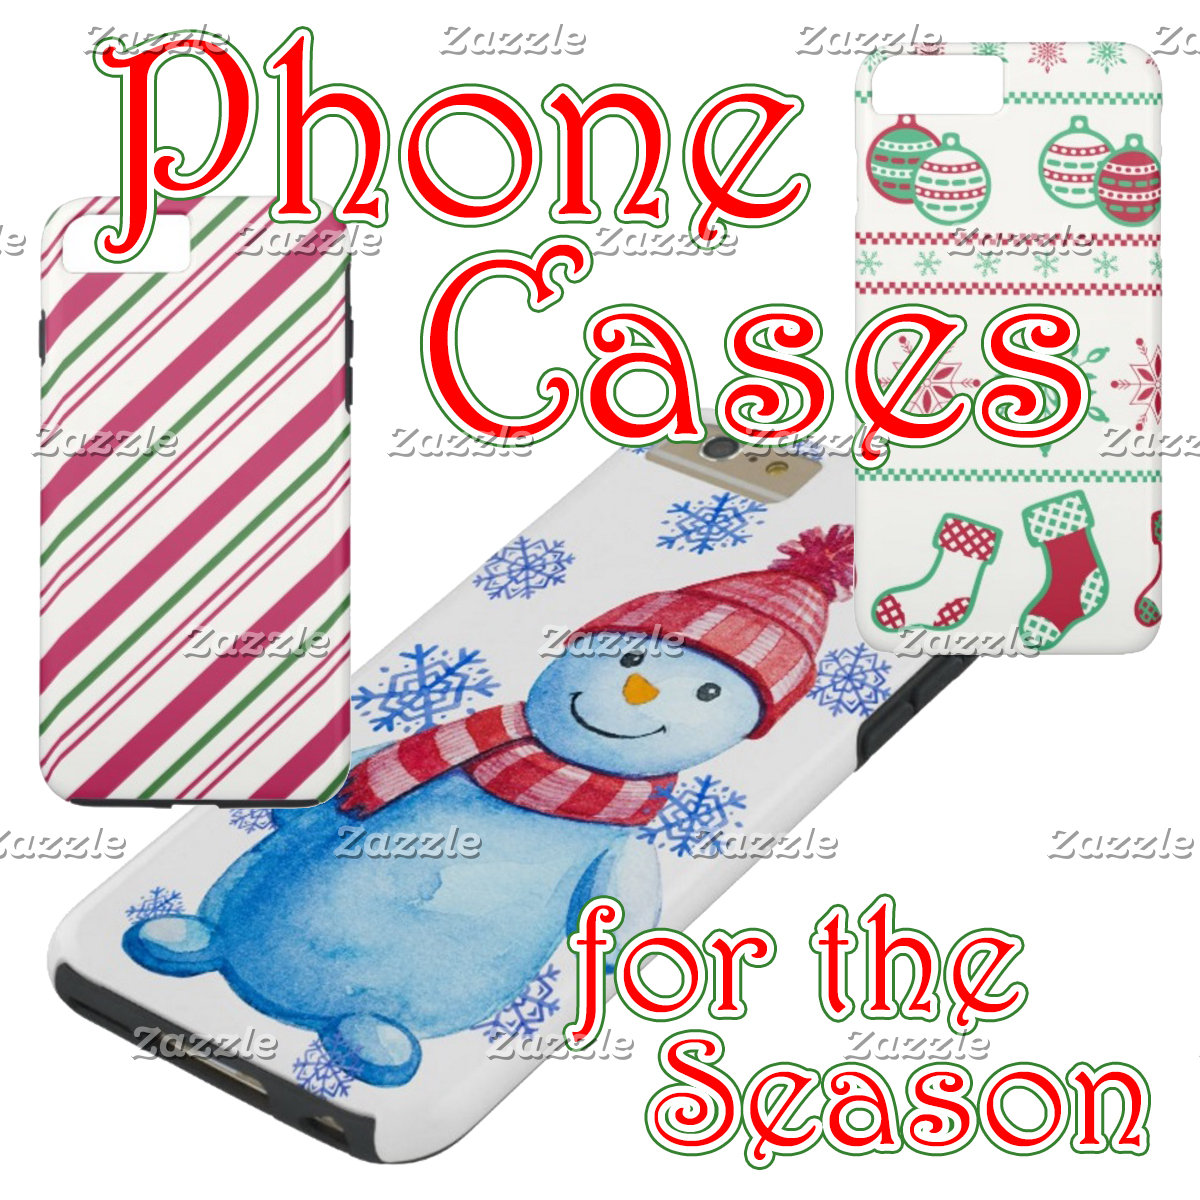 Phone Cases for the Season